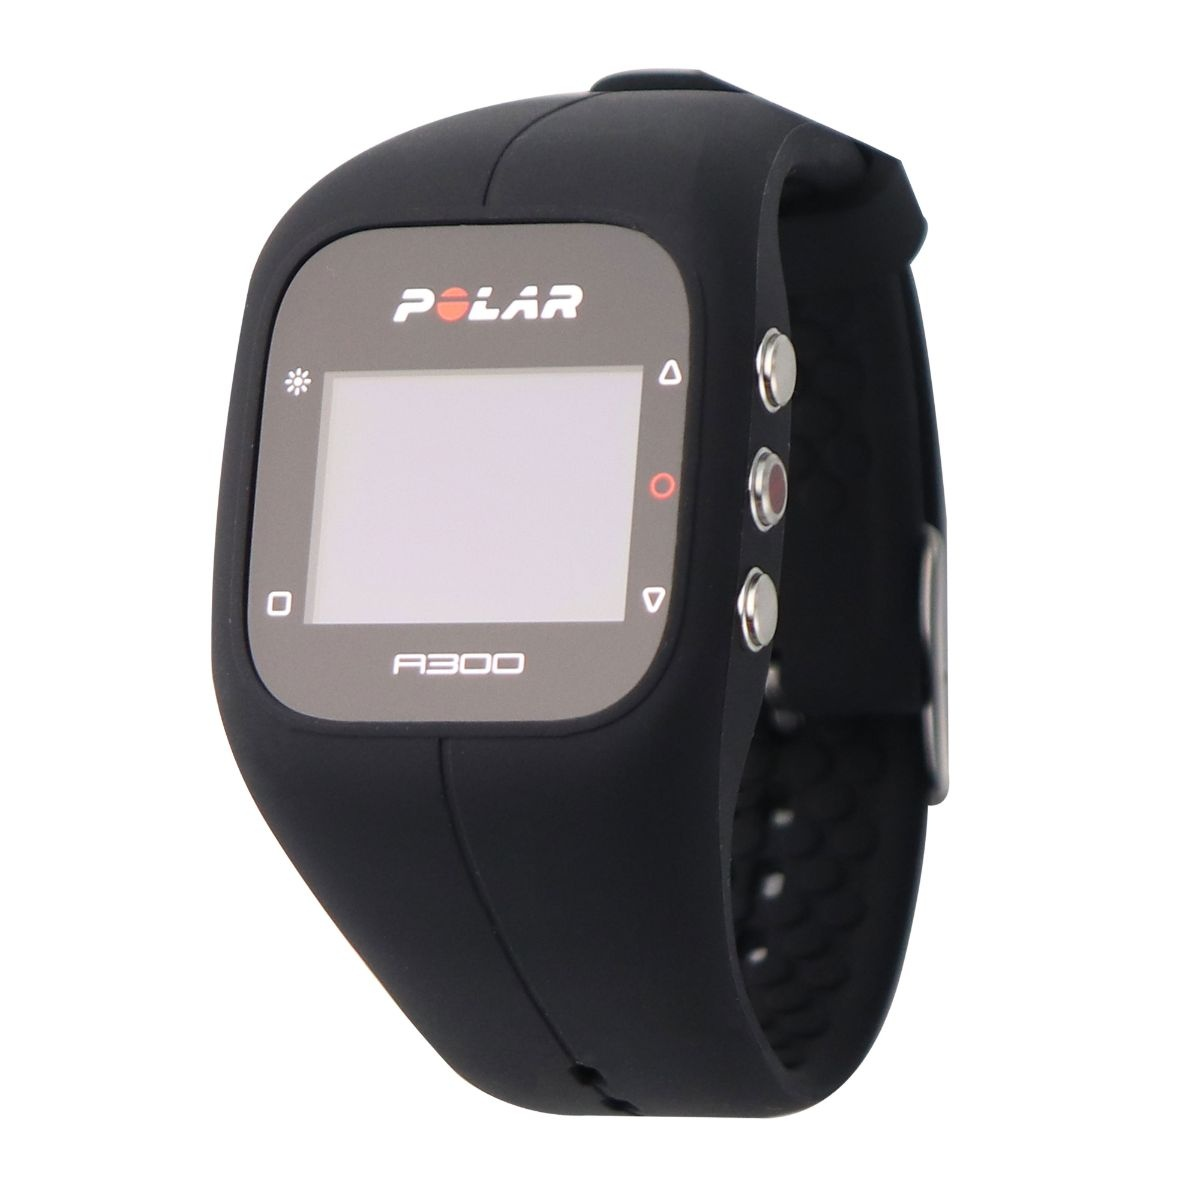 Polar A300 Fitness and Activity Tracker Wrsitband - Black